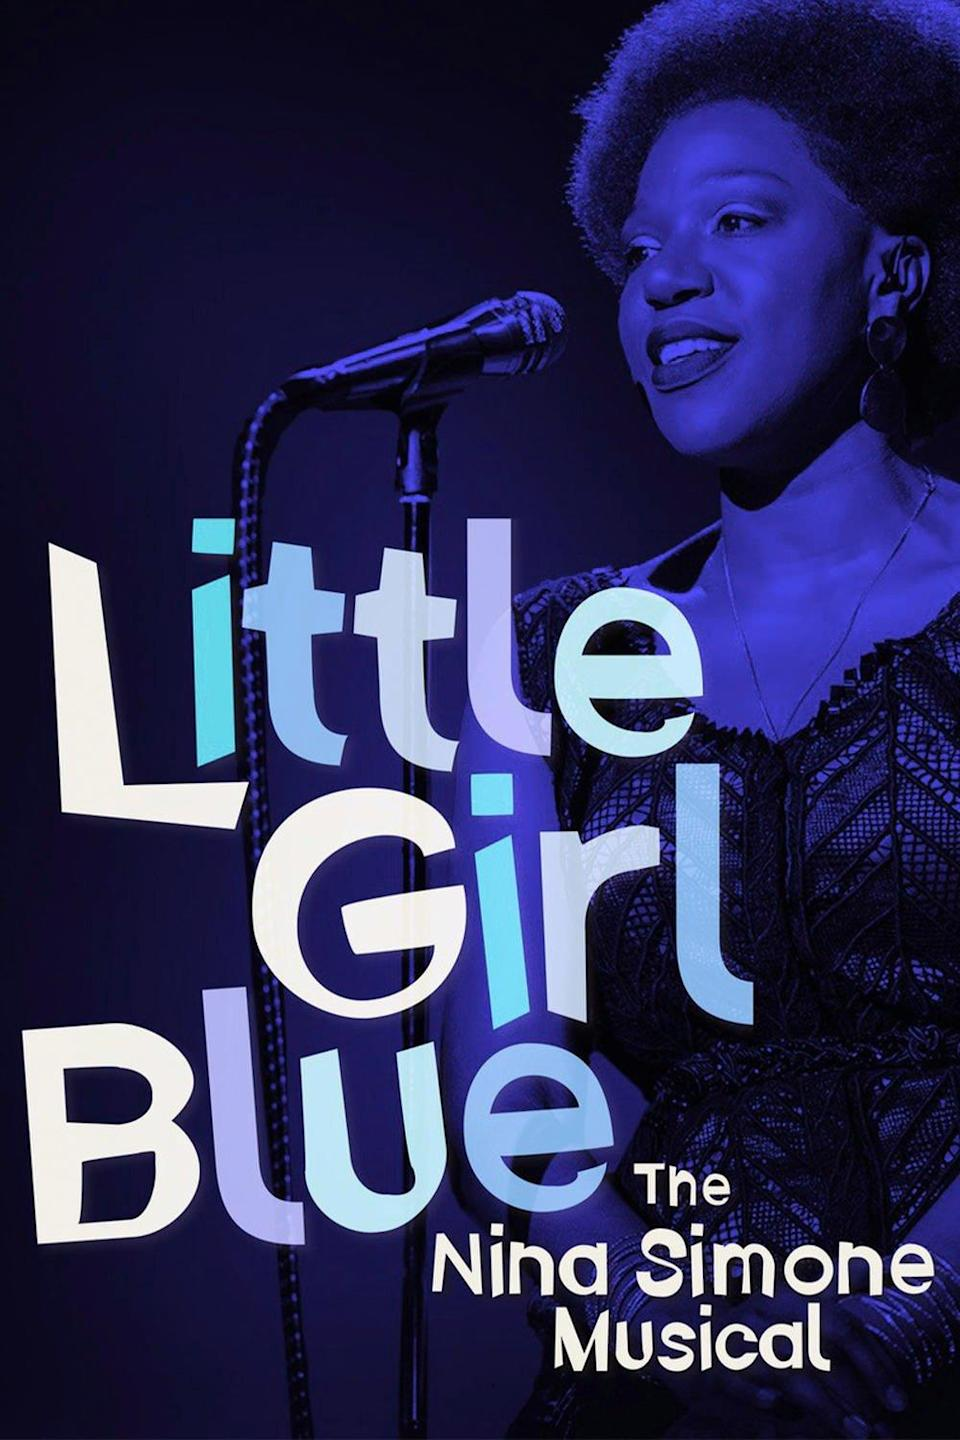 """<div class=""""inline-image__credit"""">Courtesy of Little Girl Blue: The Nina Simone Musical</div>"""